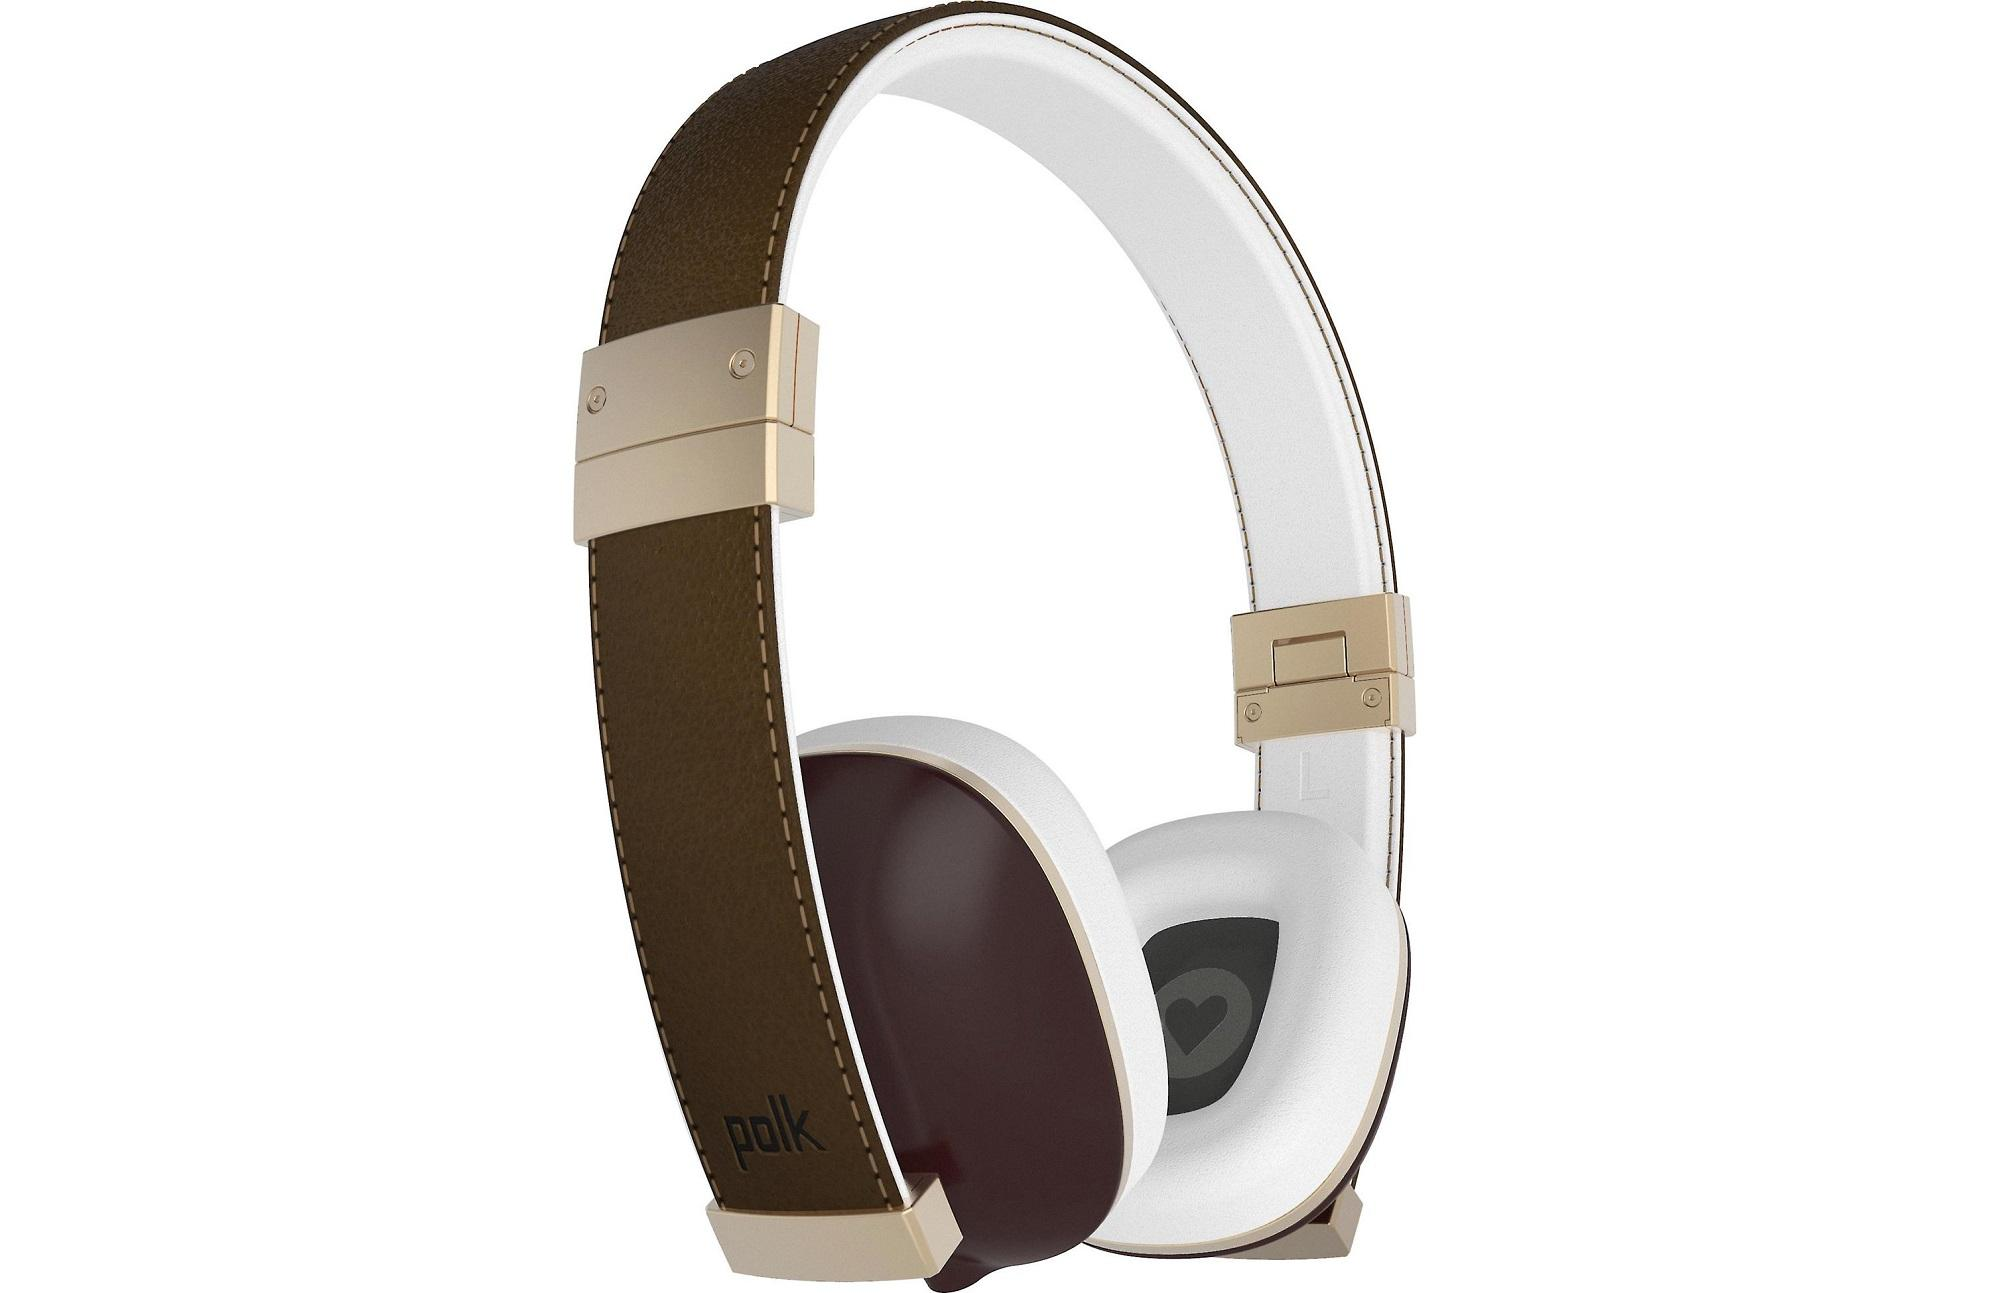 Polk Audio Hinge On-ear headphones with in-line remote and microphone (Brown)